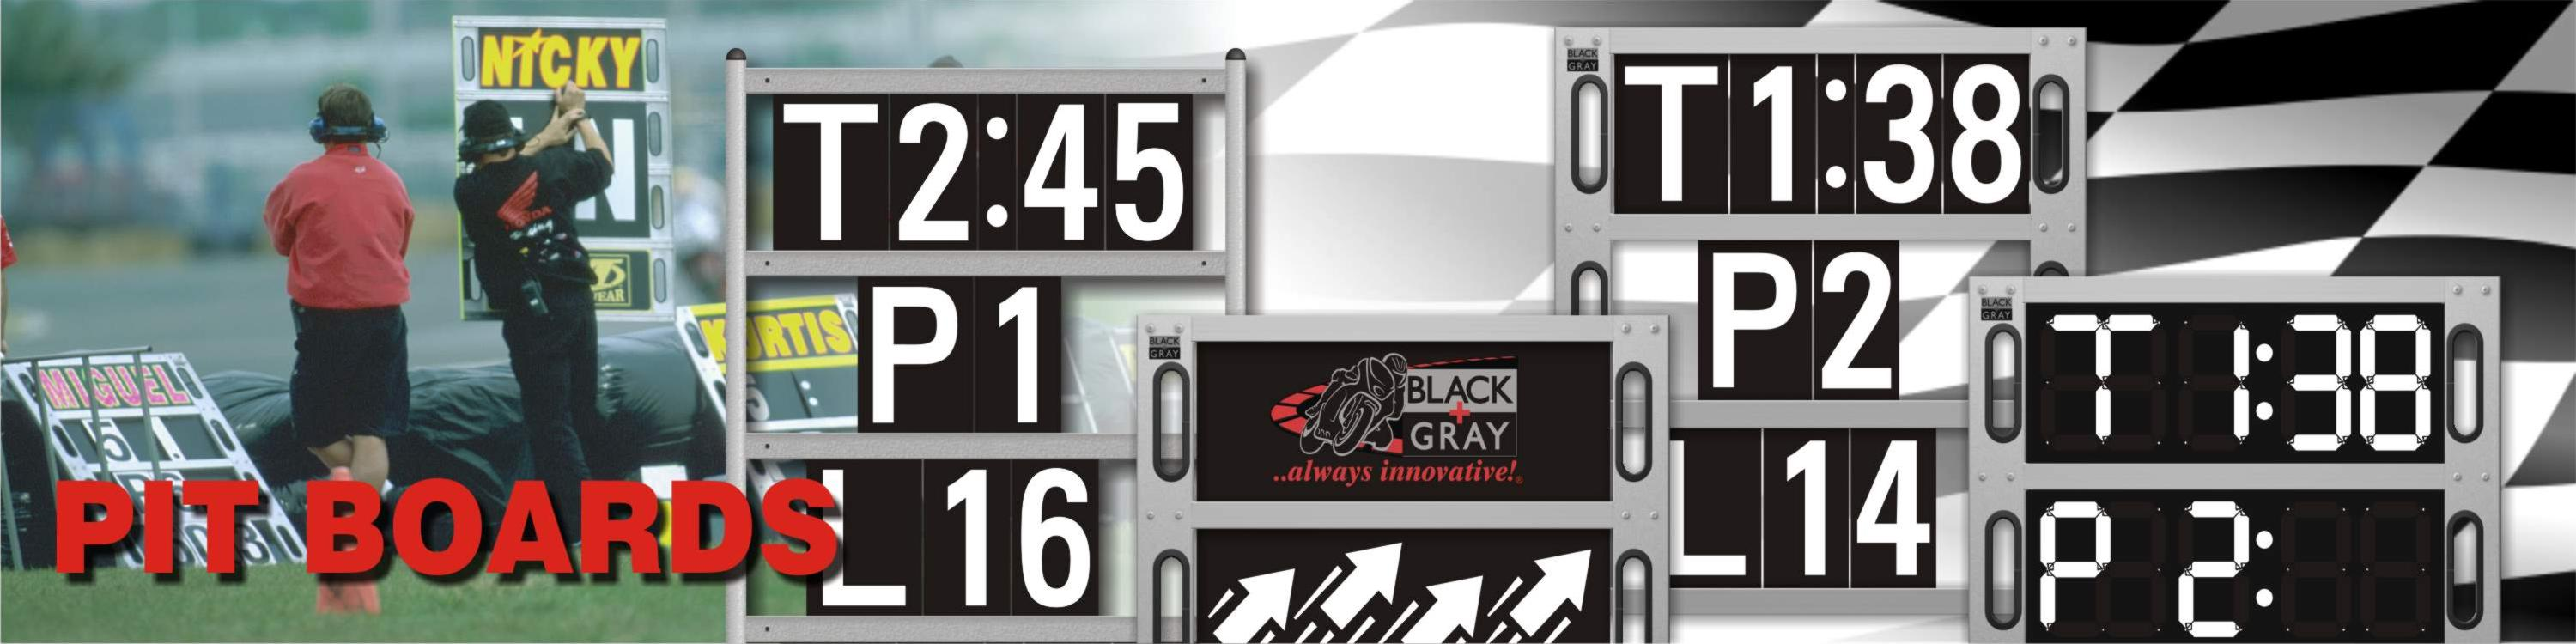 Pit Boards for Motorcycle Racing